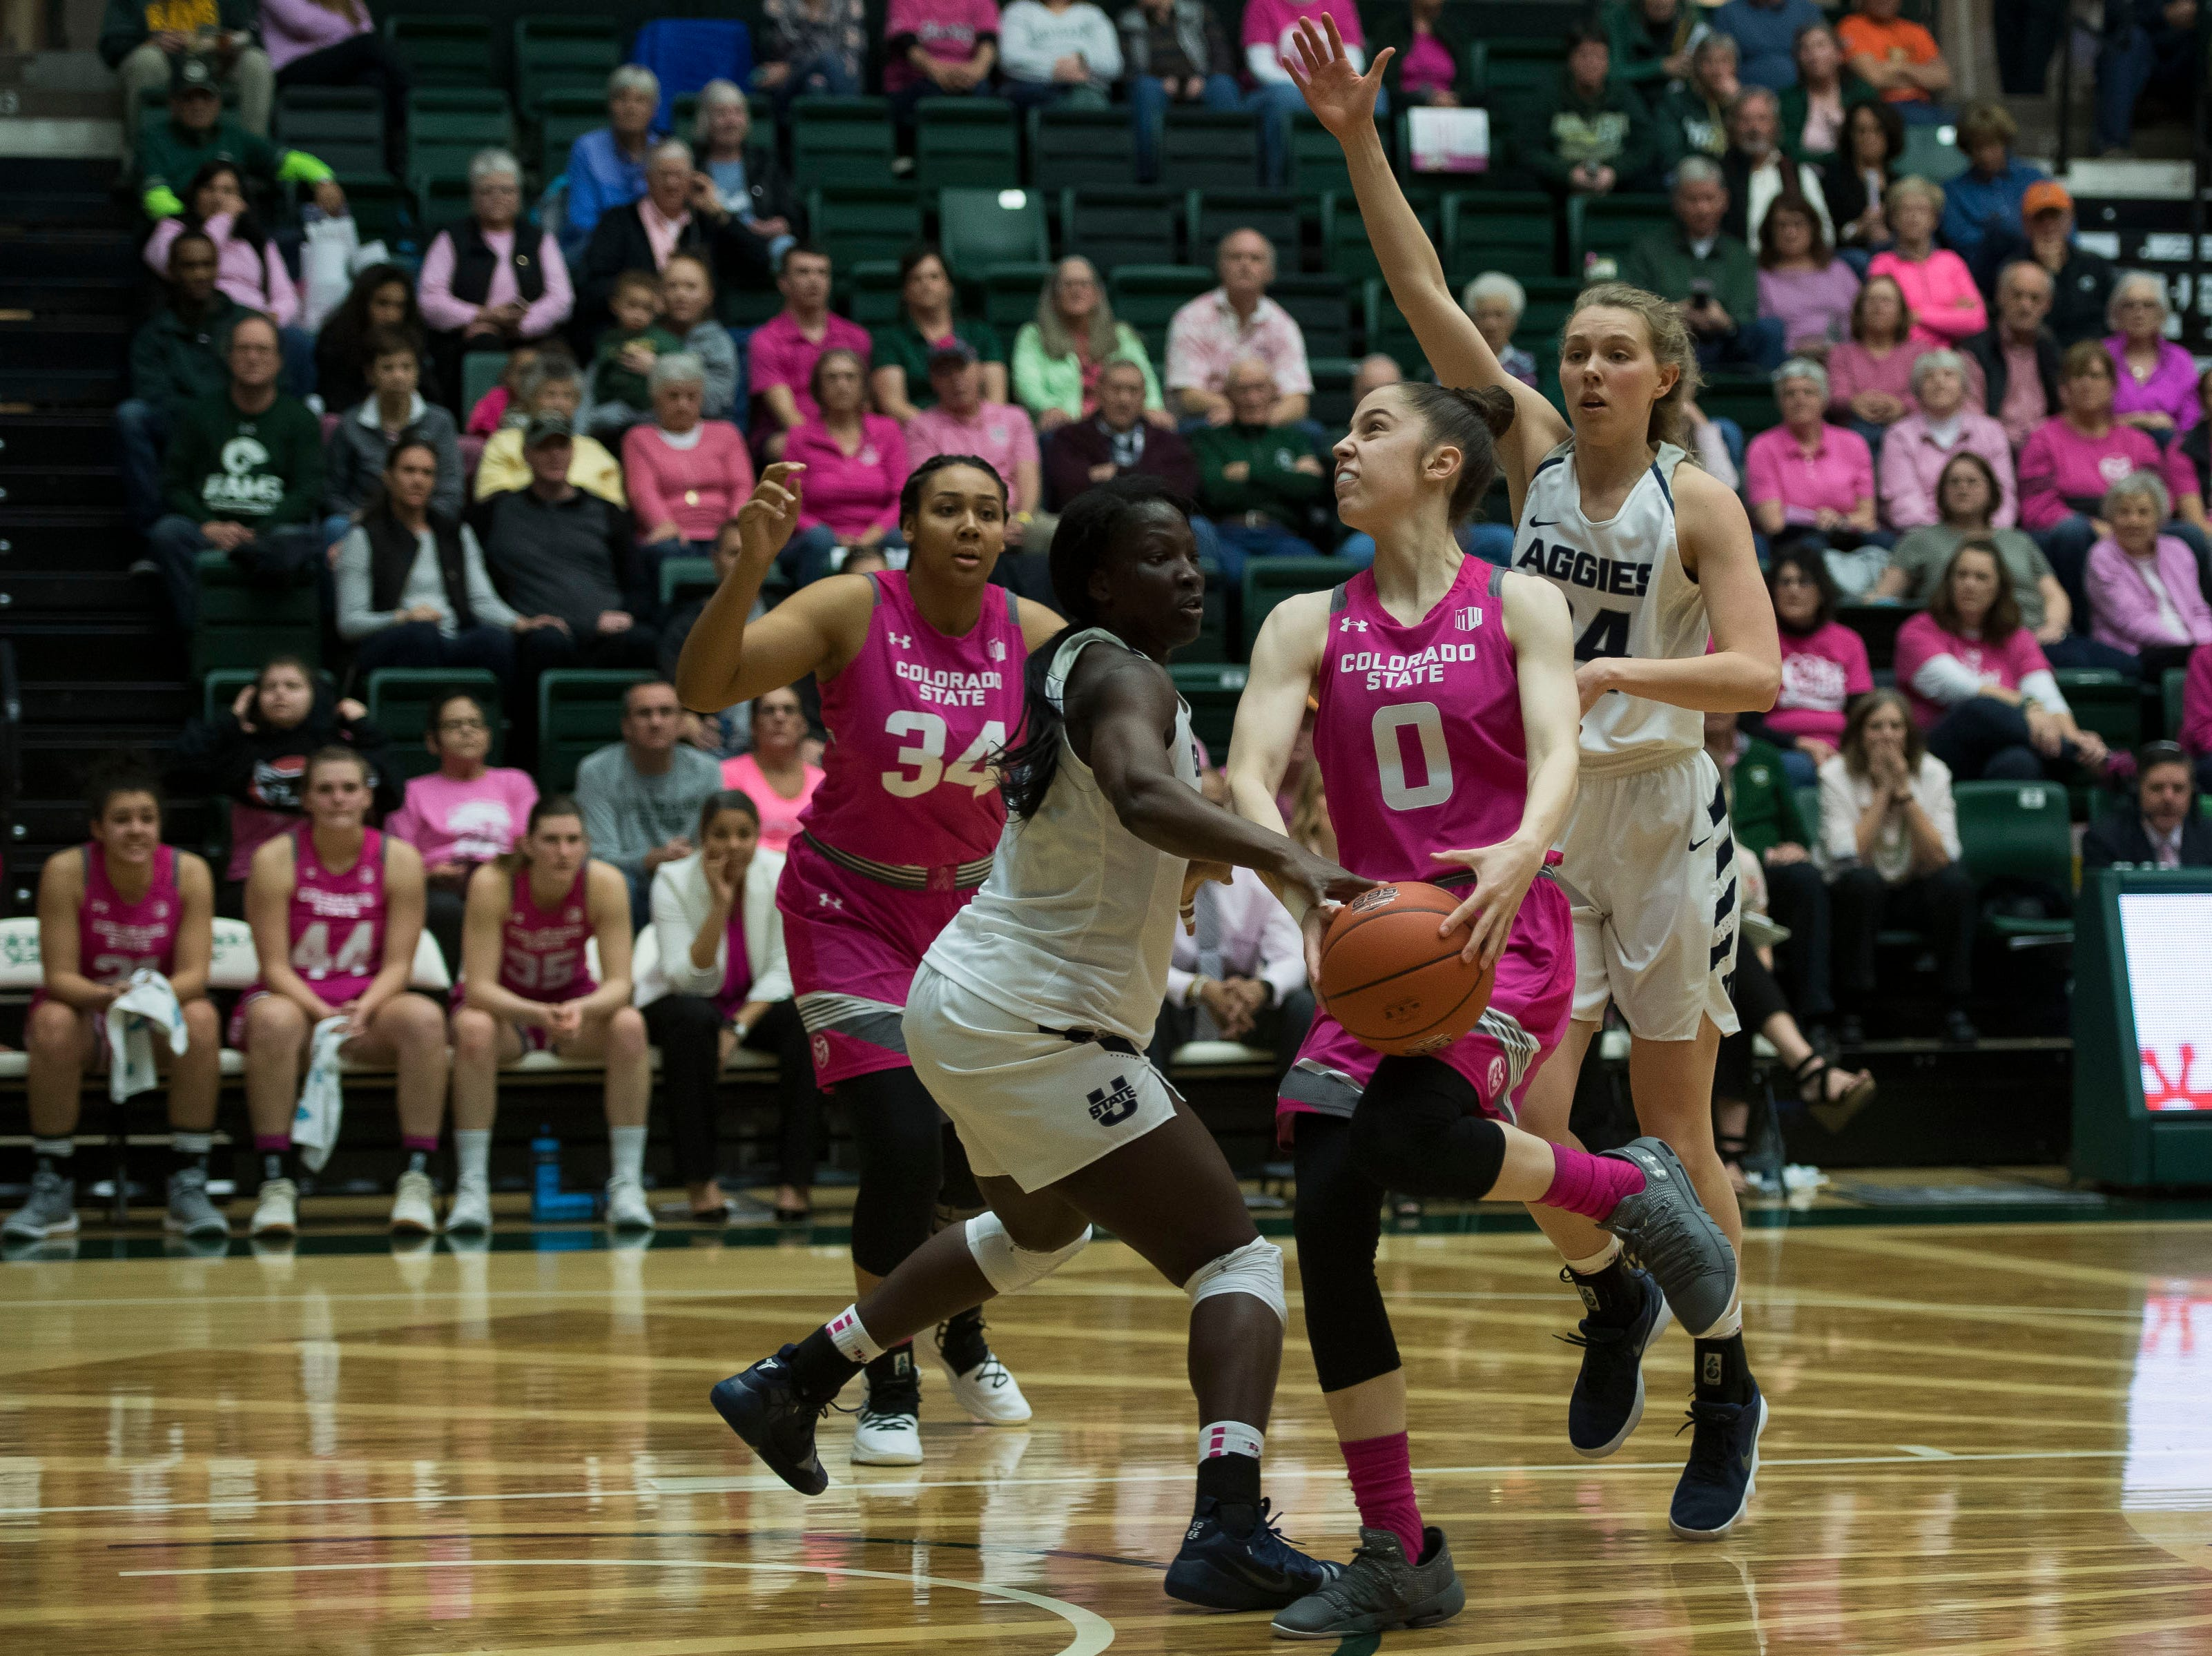 Colorado State University freshman forward Taylor Mole (0) has the ball knocked out by Utah State junior forward Marlene Aniambossou (24) on Saturday, Jan. 19, 2019, at Moby Arena in Fort Collins, Colo.